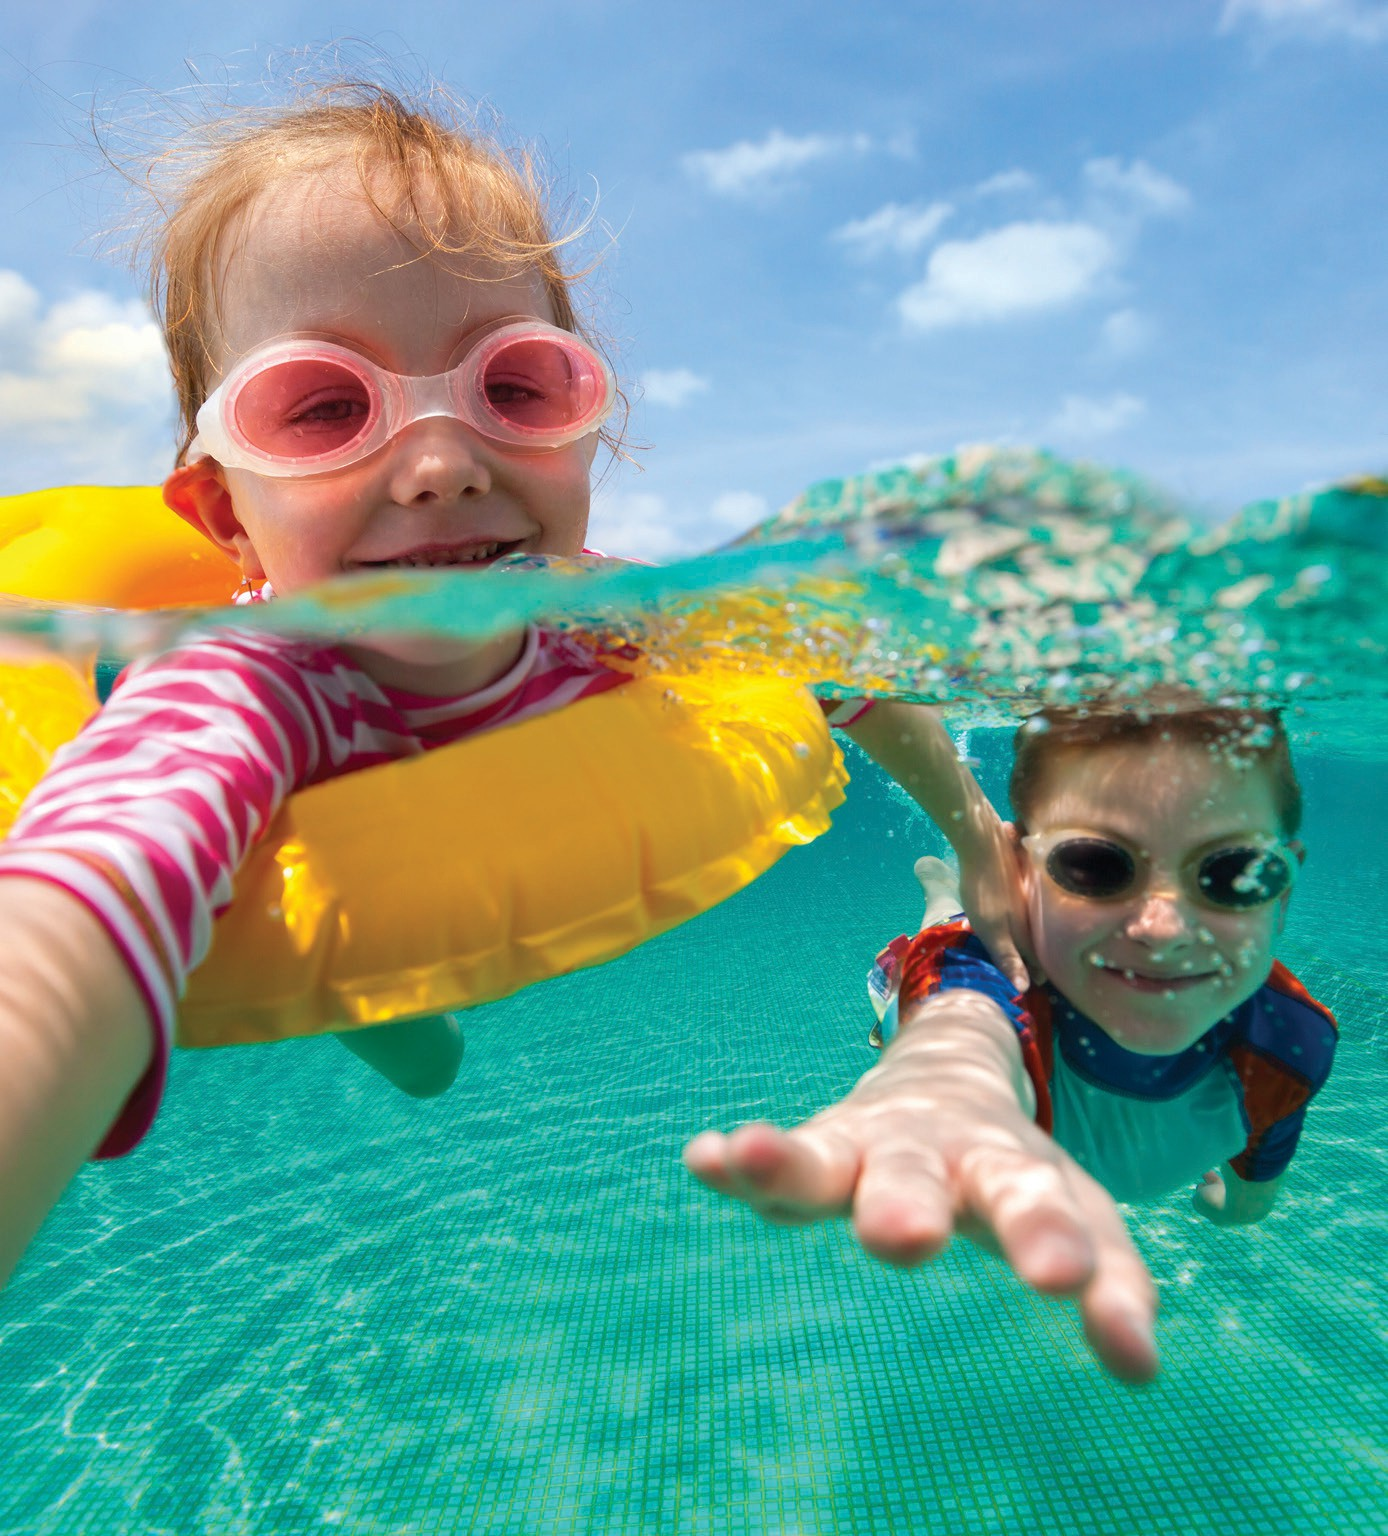 Through the Y's Safety Around Water program, parents and caregivers will be encouraged to help their children learn fundamental water safety and swimming skills.